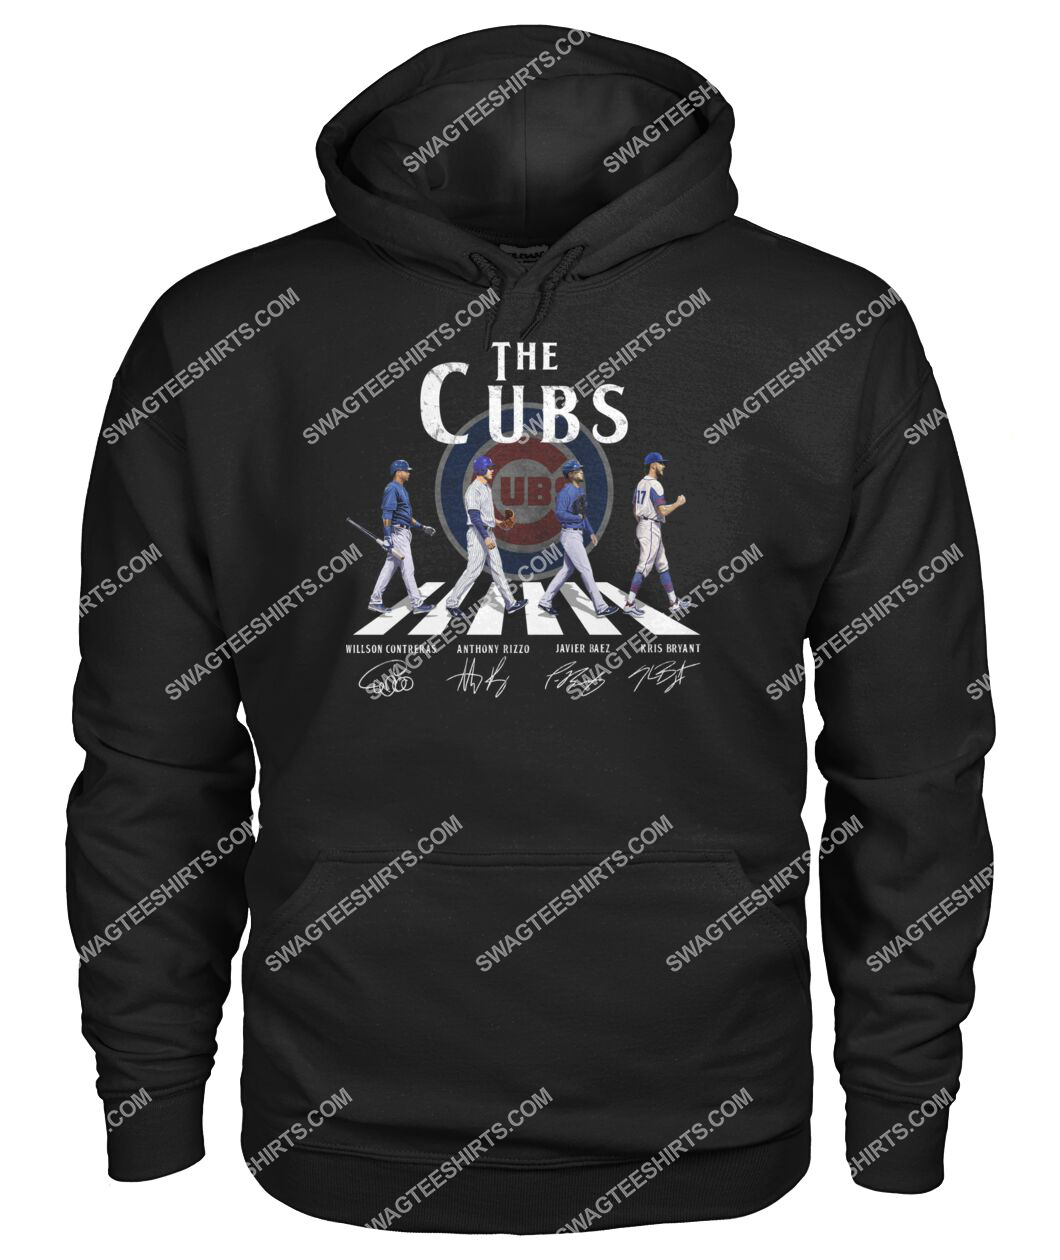 the chicago cubs signatures walking abbey road hoodie 1